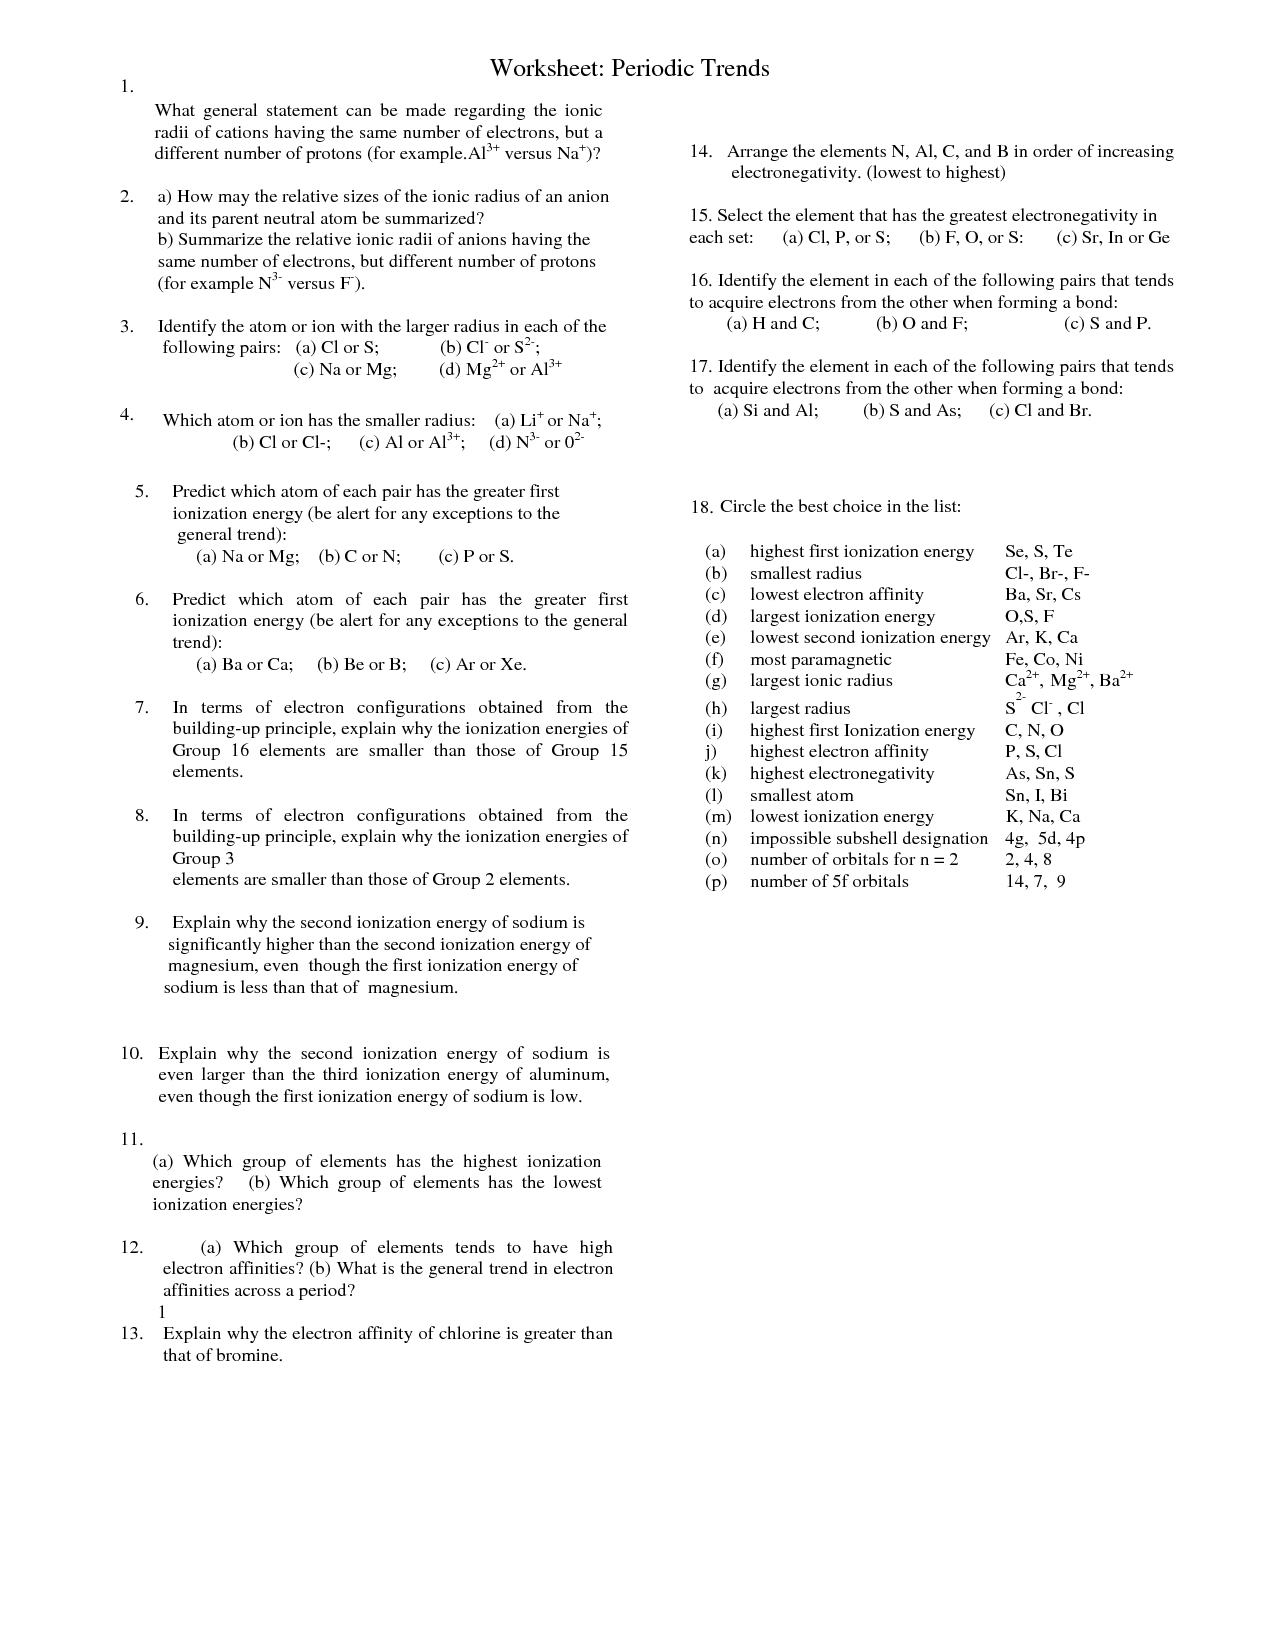 Worksheet Periodic Trends Answers